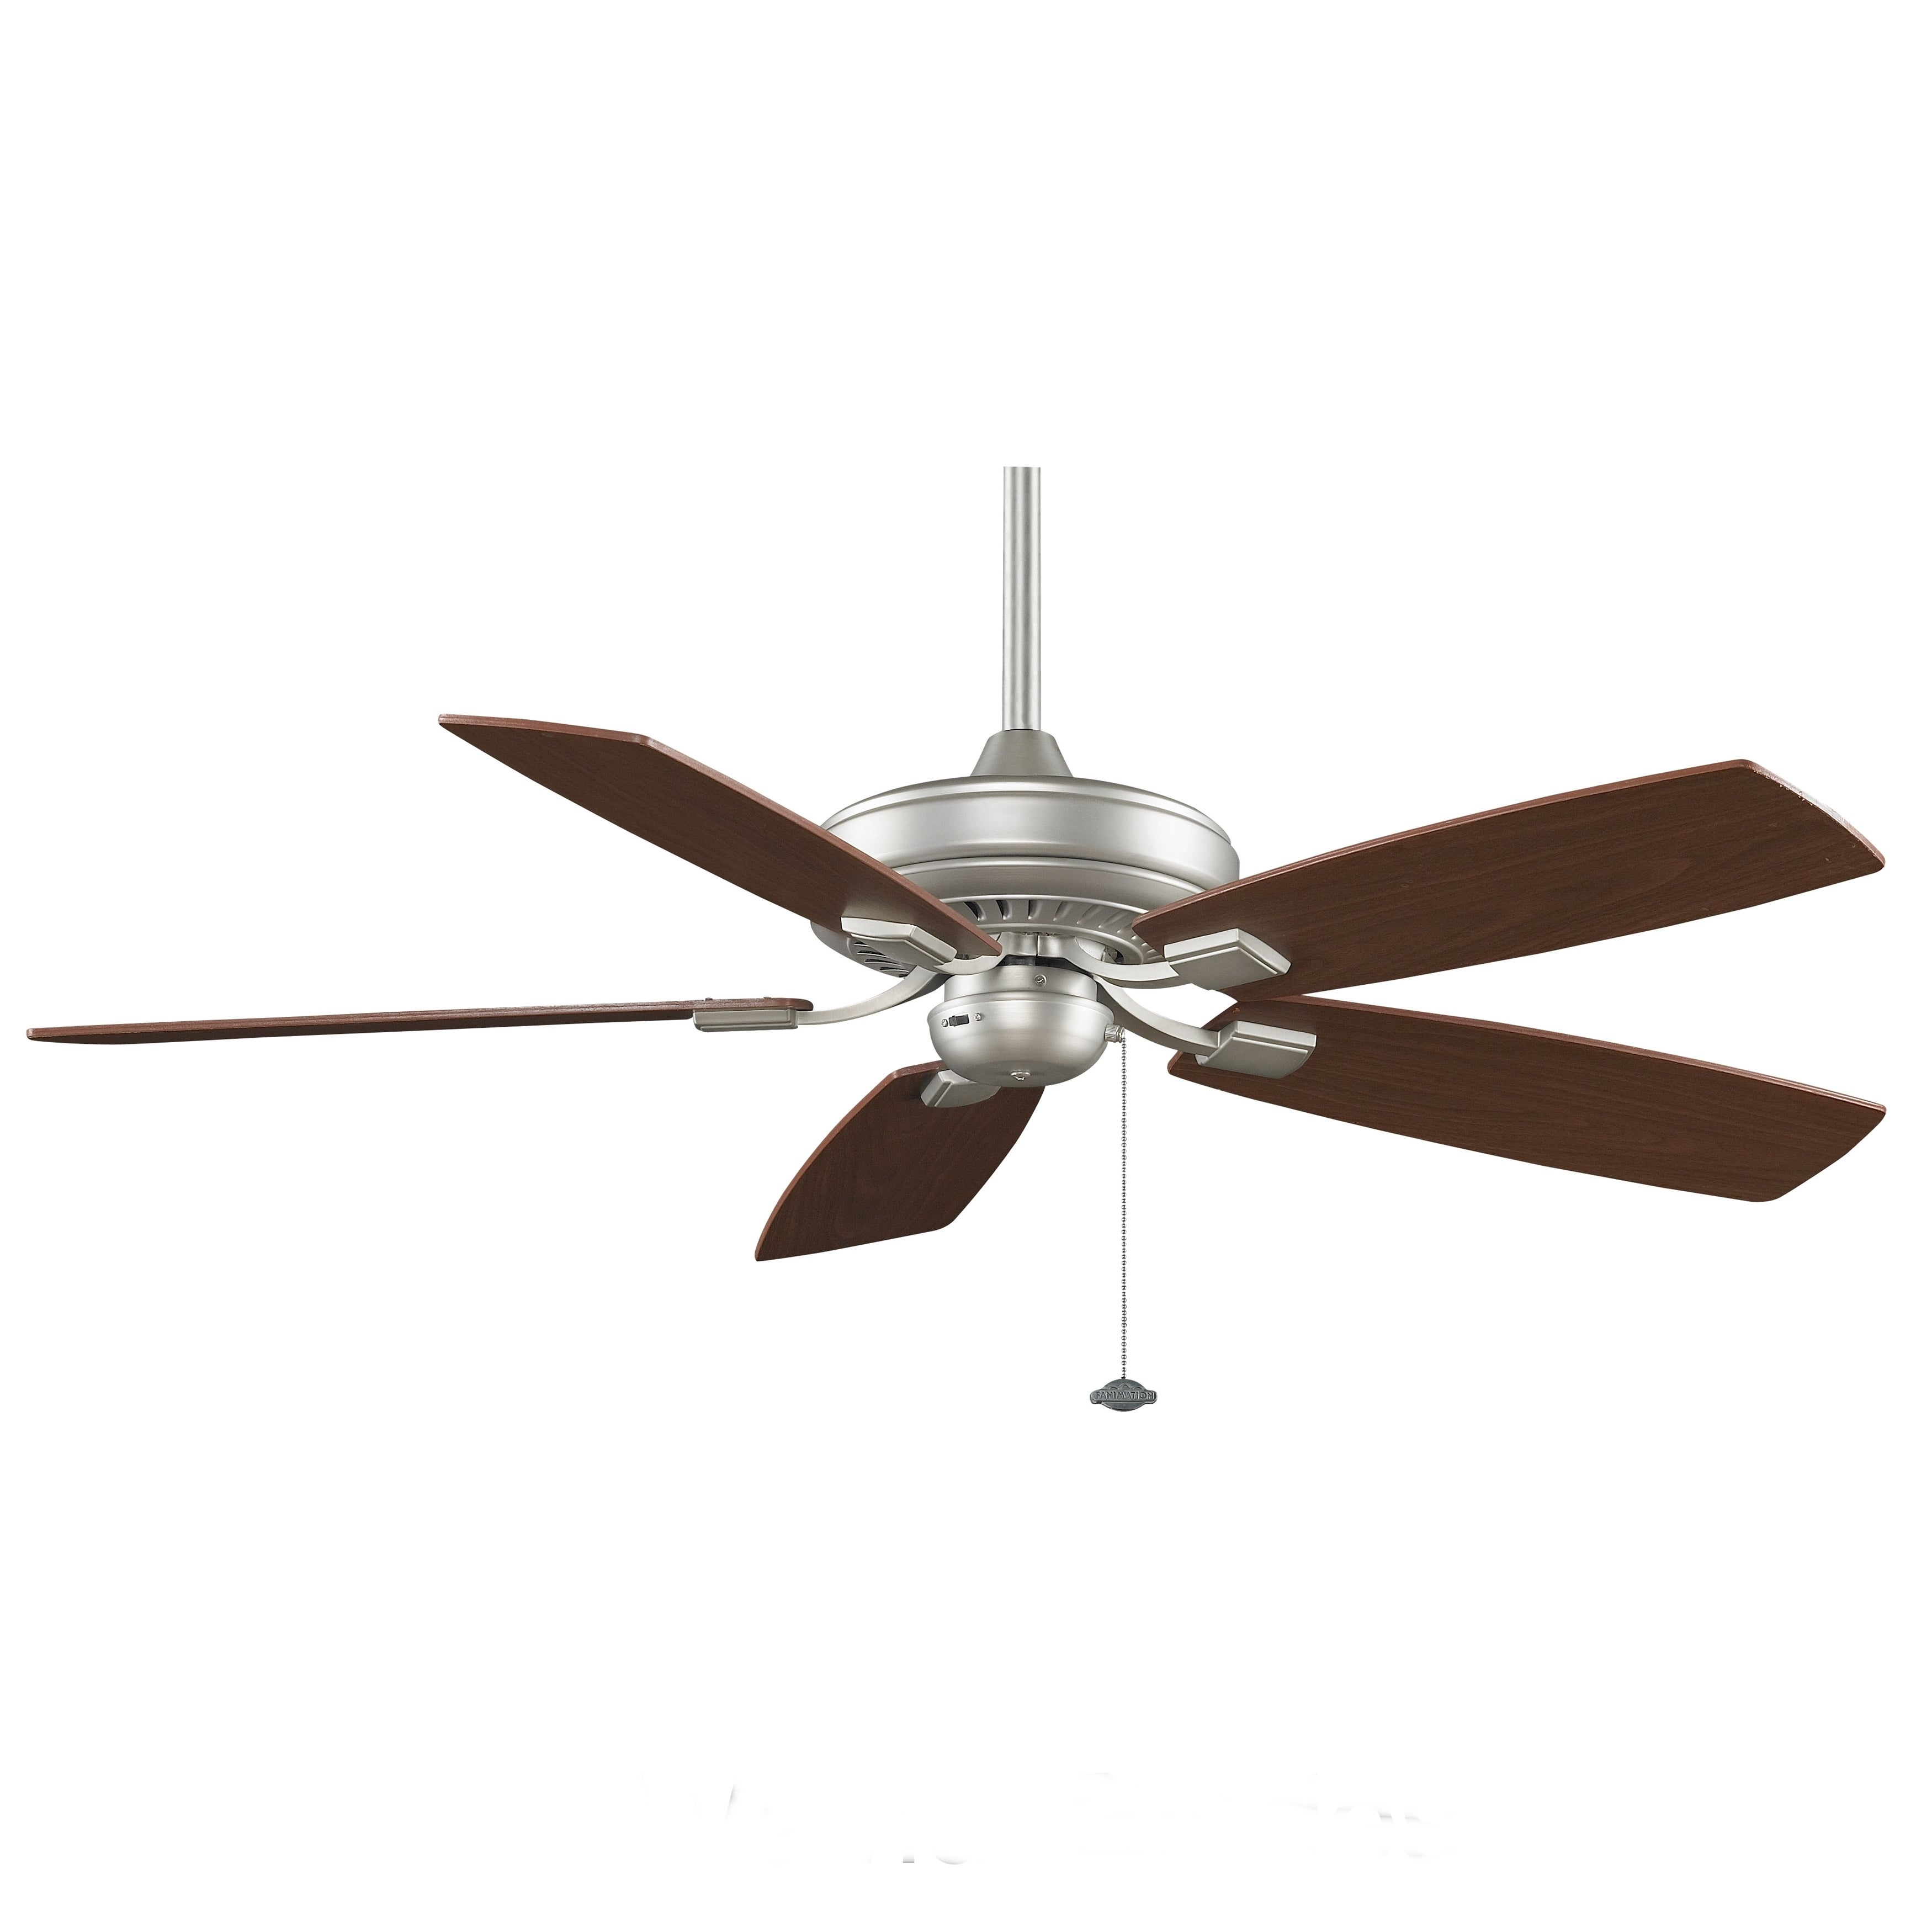 Fanimation Edgewood Decorative 52-inch Satin Nickel Ceiling Fan at Sears.com